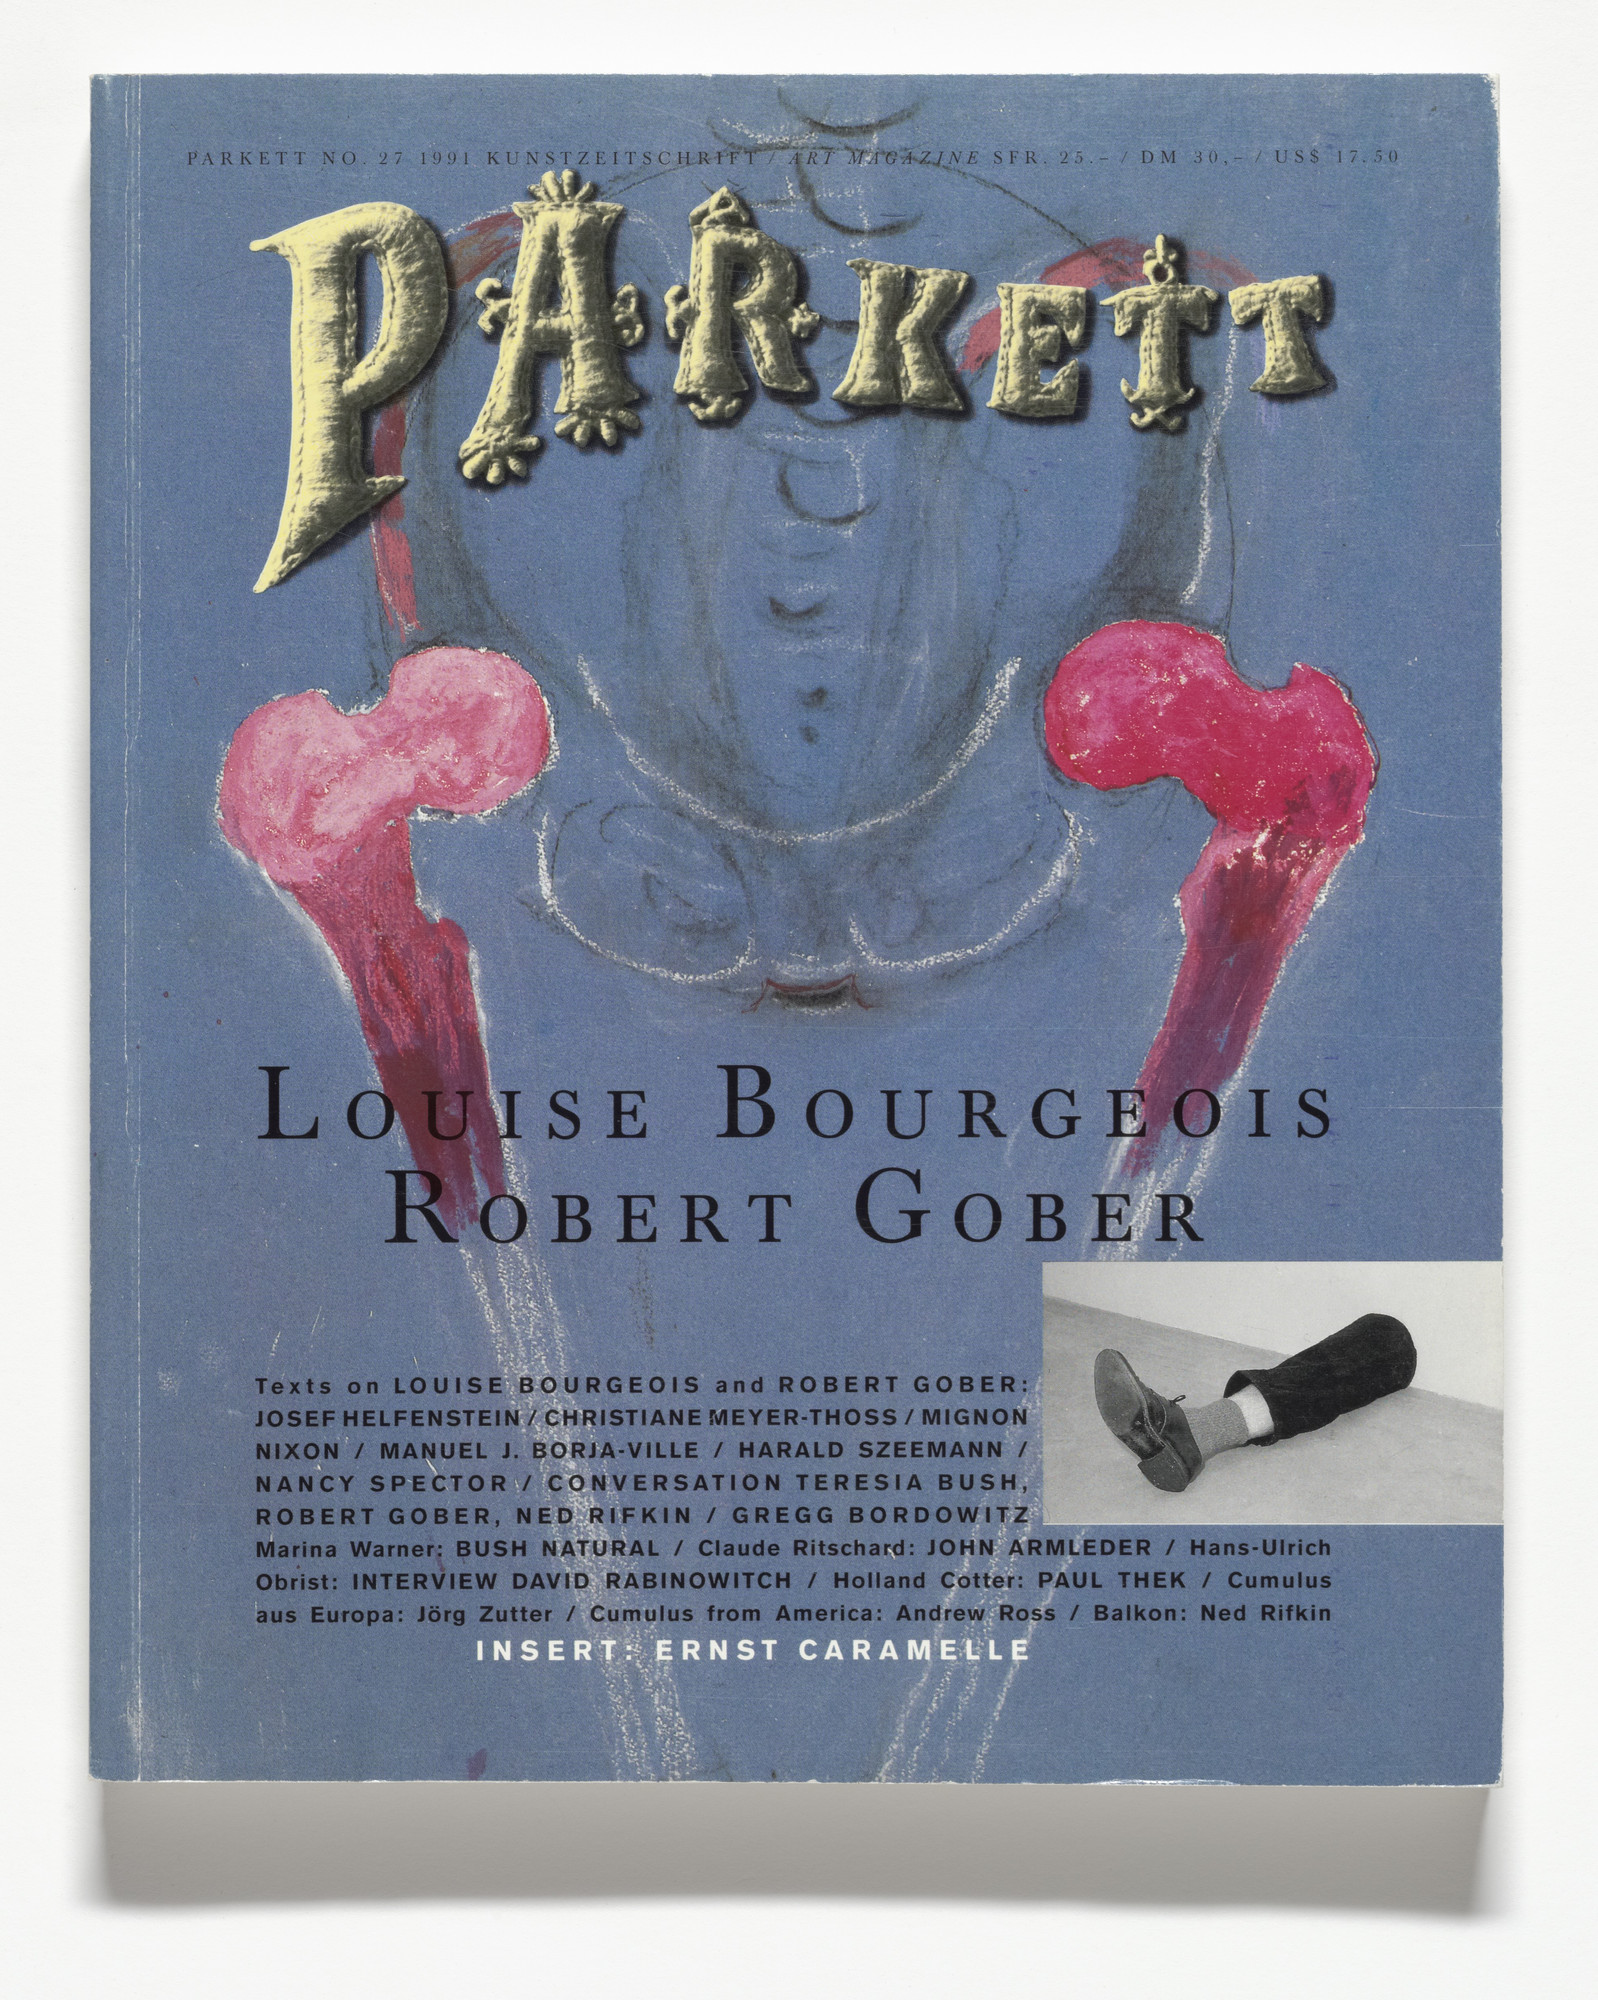 Various Artists, Louise Bourgeois, Ernst Caramelle, Robert Gober, André Thomkins. Parkett no. 27. 1991